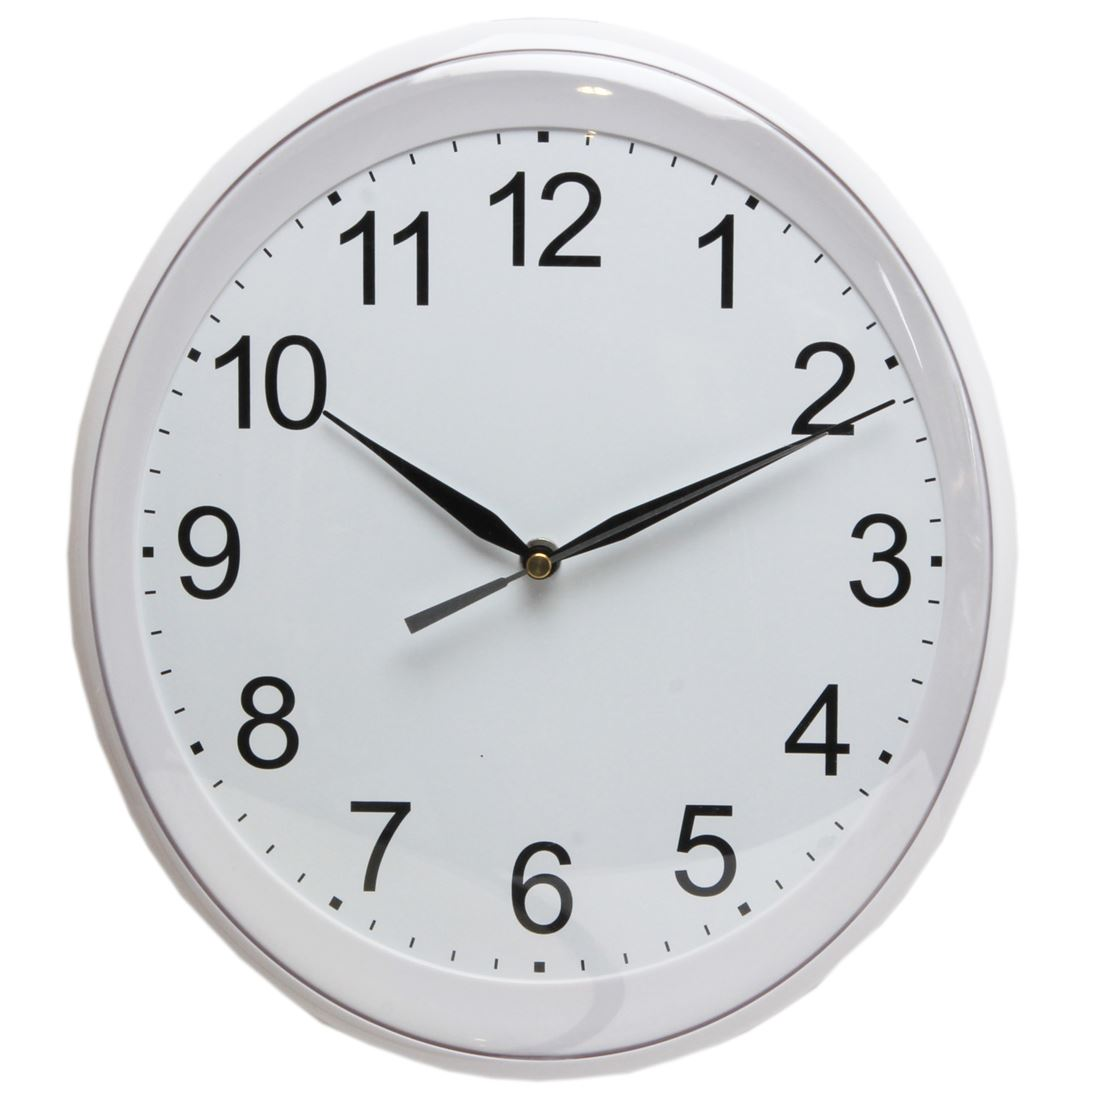 Oval Clock Face Details About Wm Widdop Silver Oval With White Dial Arabic Numbers 29 5cm Wall Clock